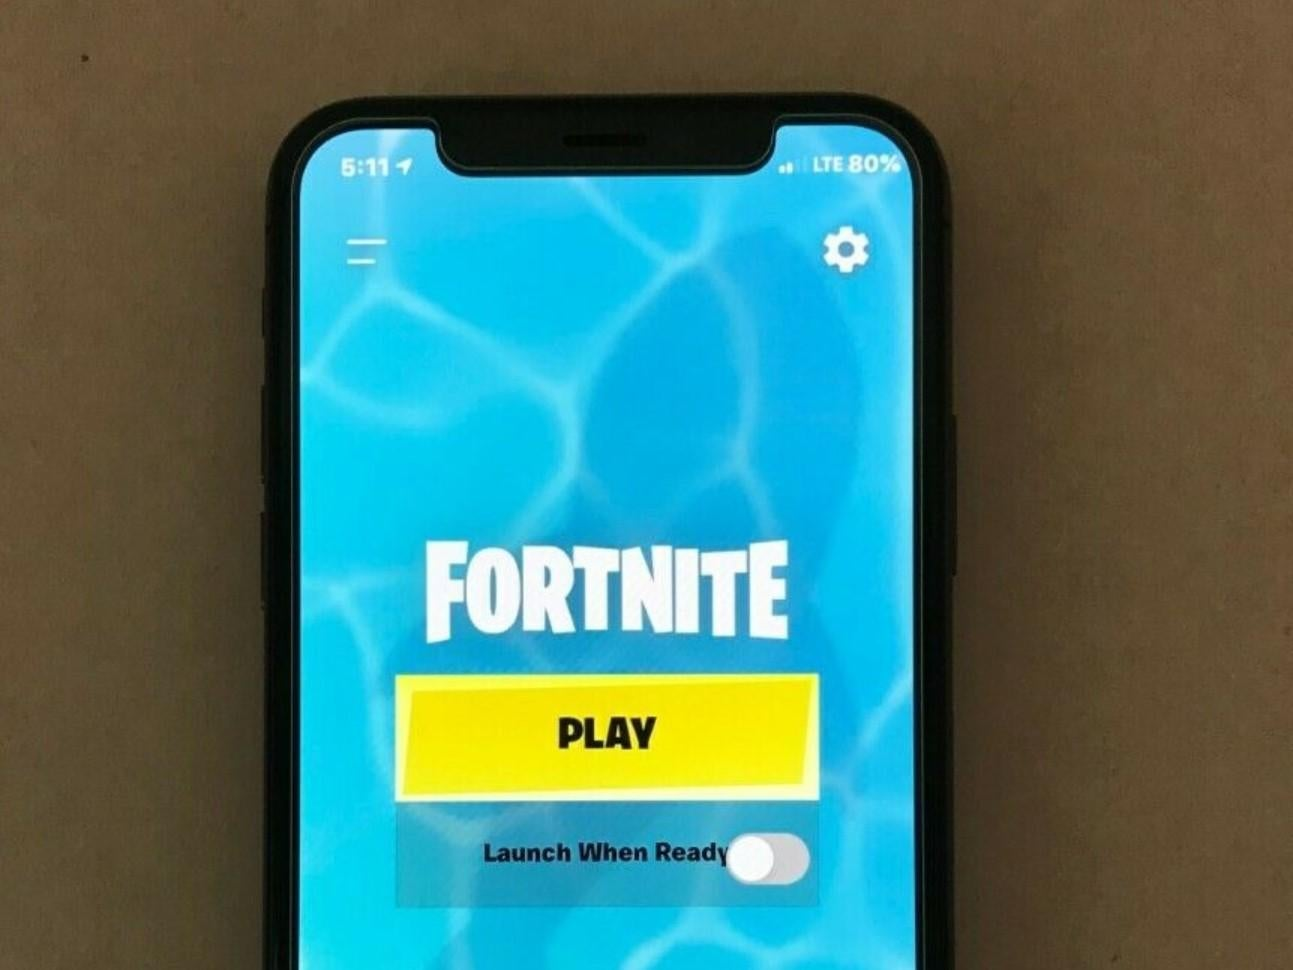 Iphones With Fortnite Installed Selling For Thousands On Ebay The Independent Independent